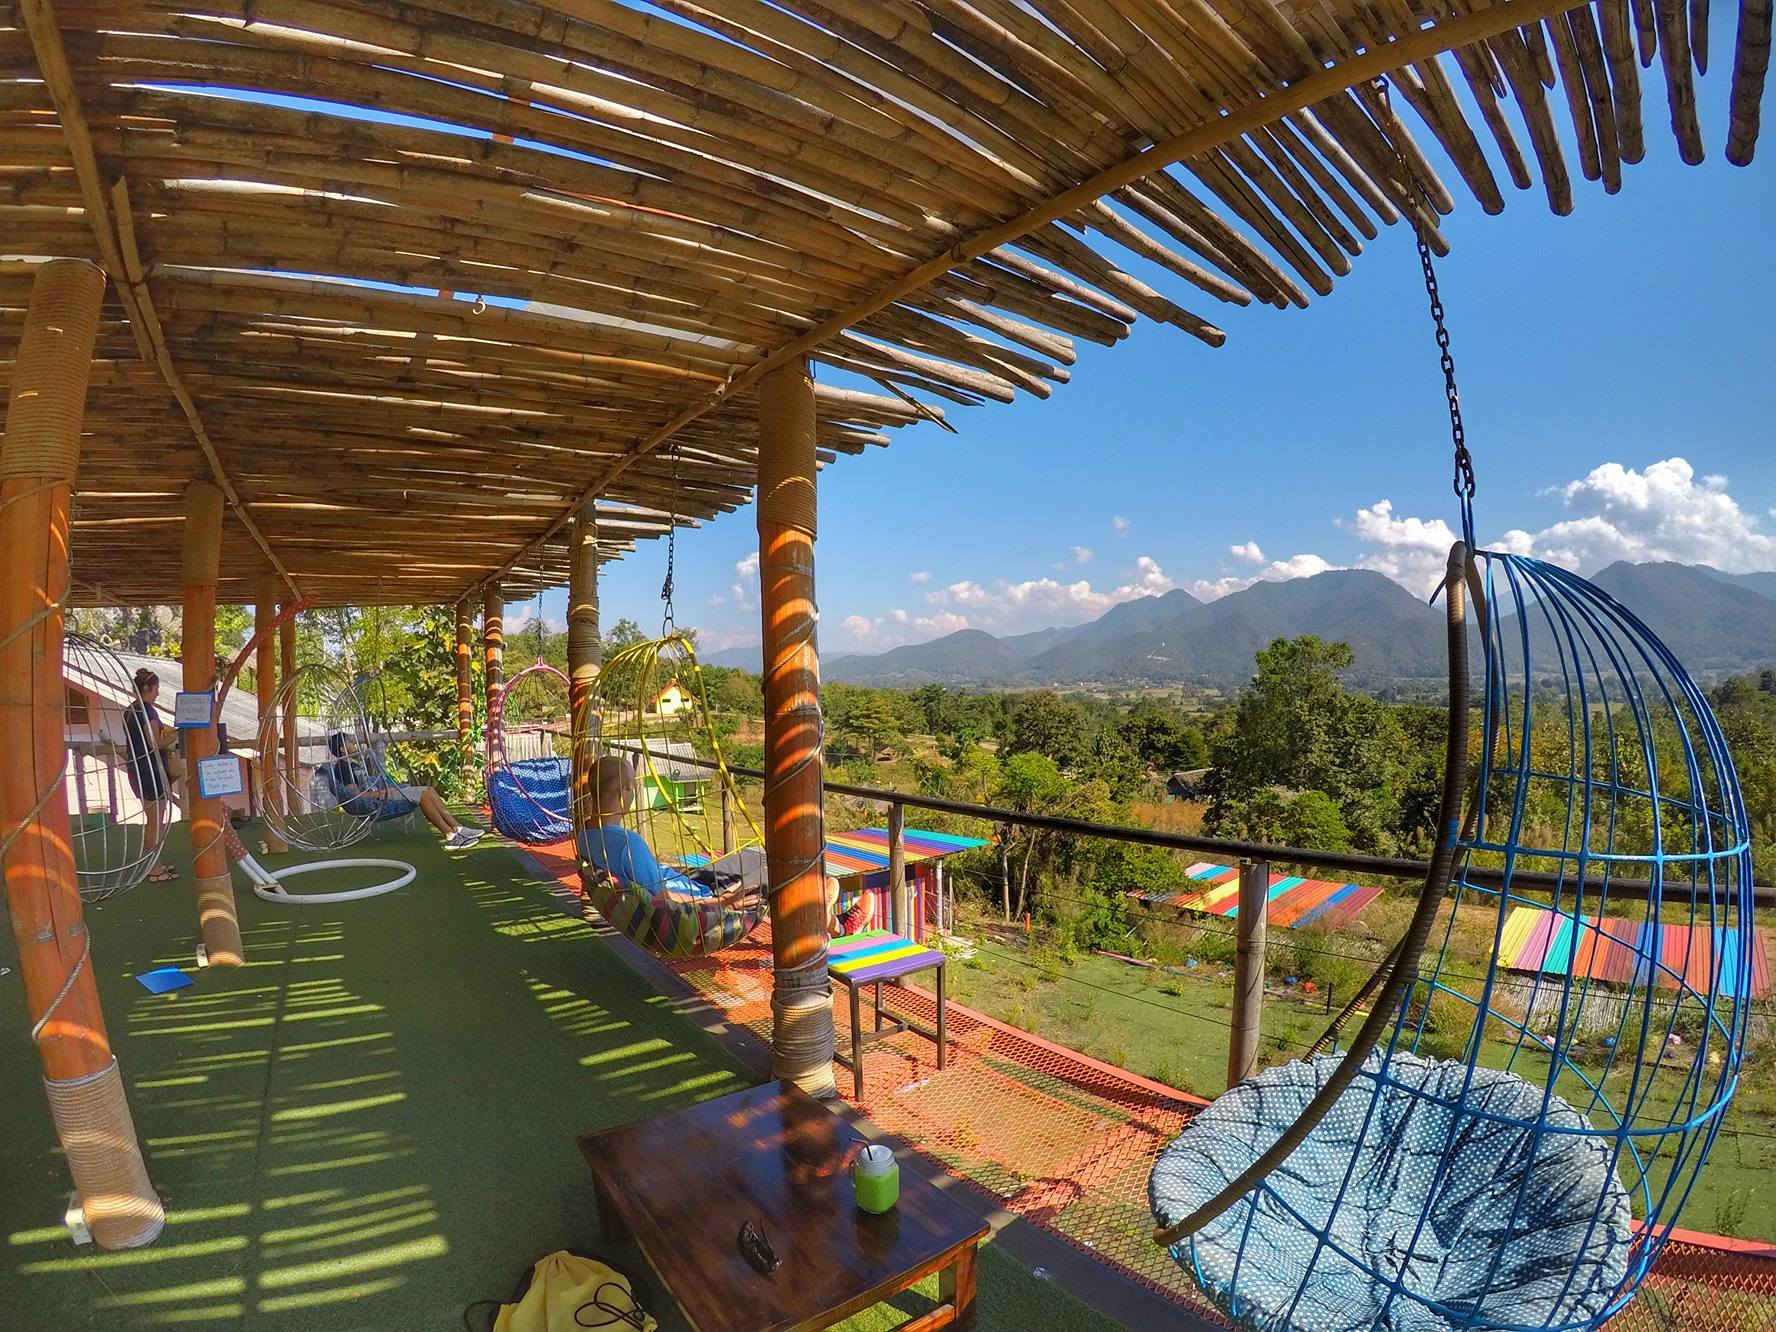 Route 1094 Cafe - Pai, Thailand fun things to do